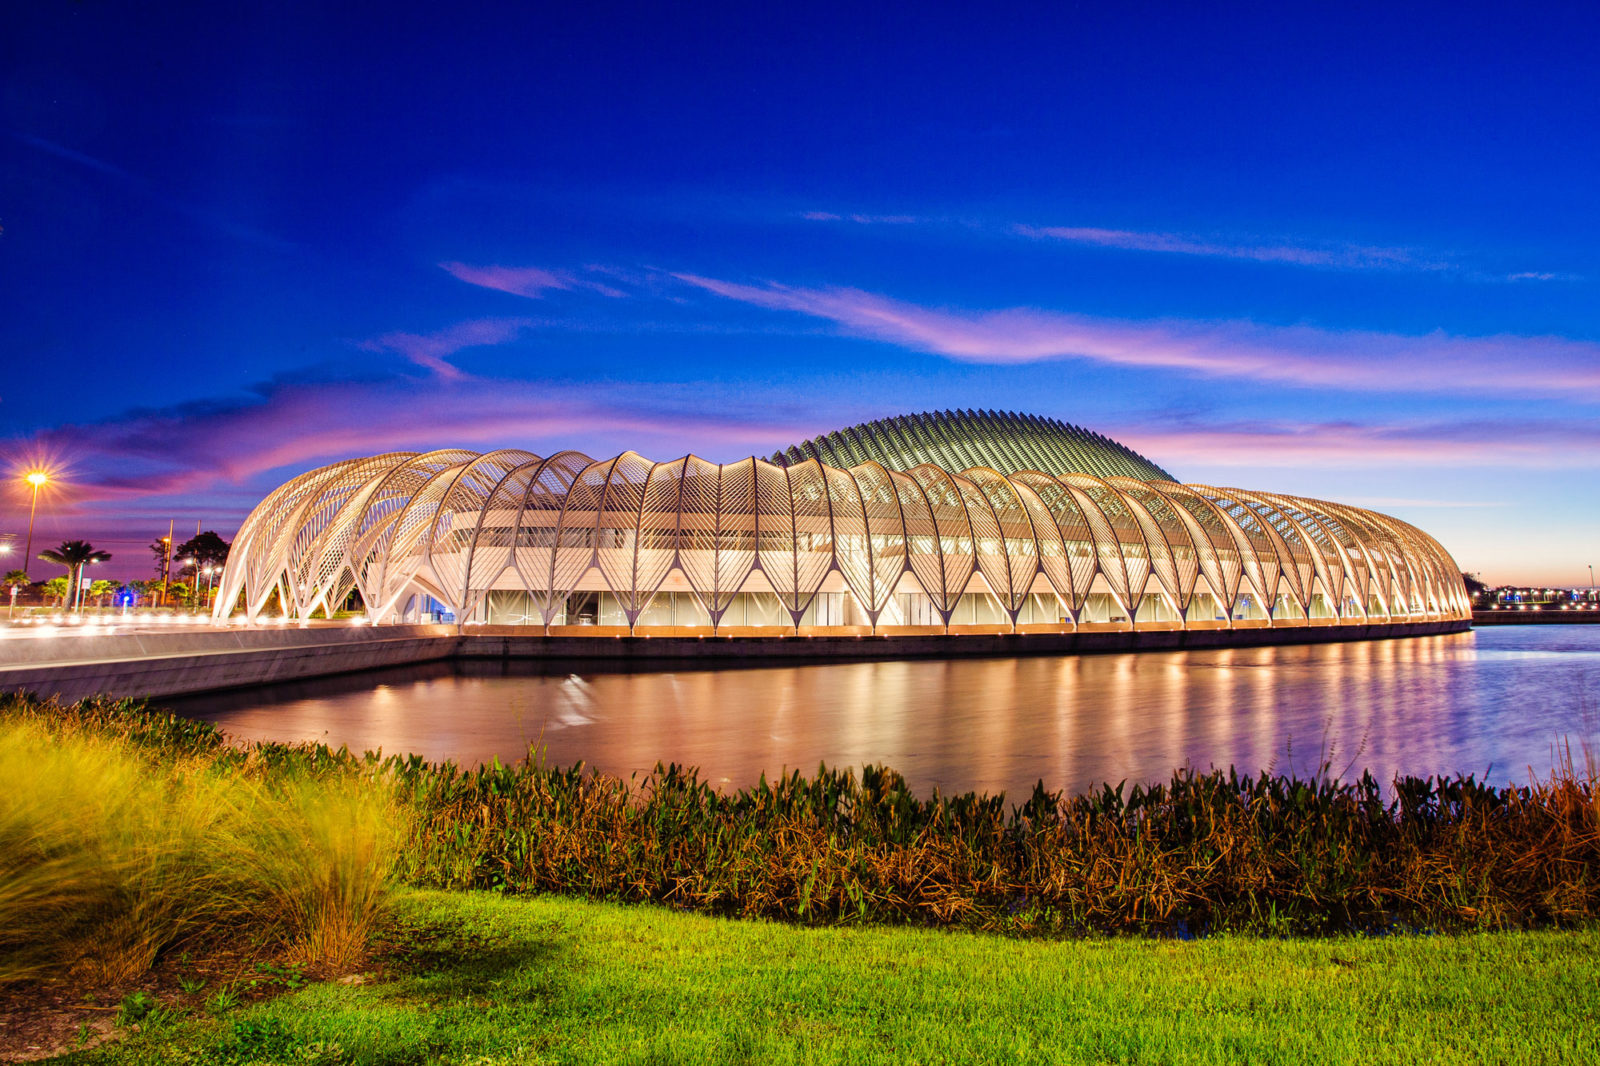 Florida Polytechnic University creates more than $289 million in overall economic activity resulting from the school, according to a new study by renowned economist Dr. Rick Harper.